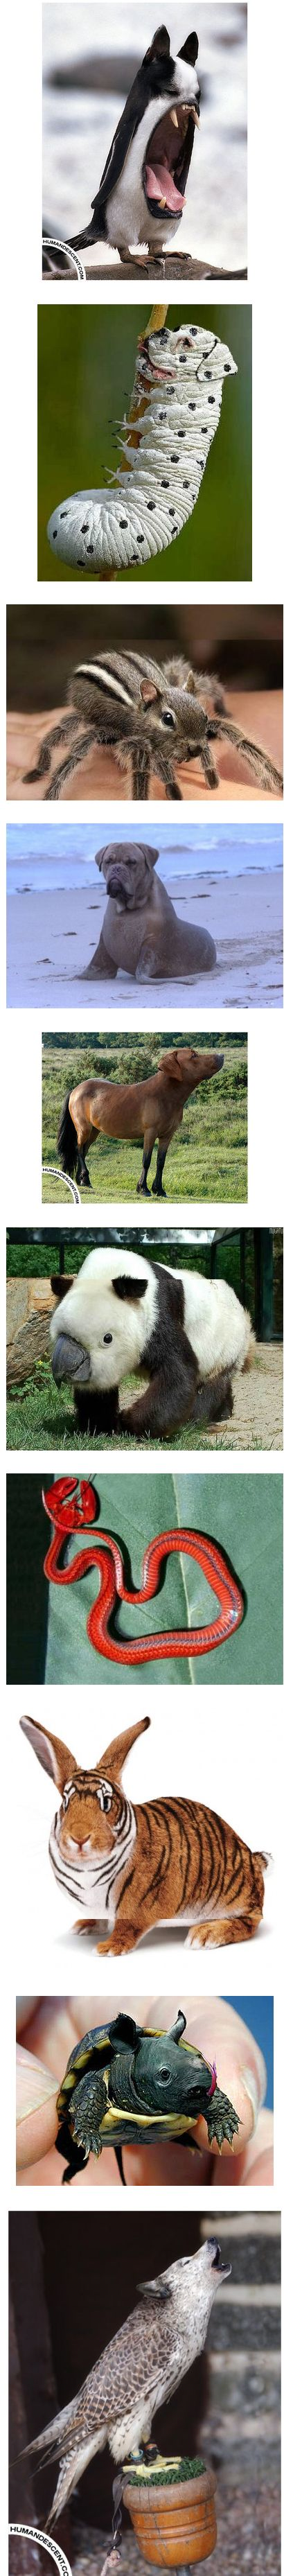 Cool photoshopped animals